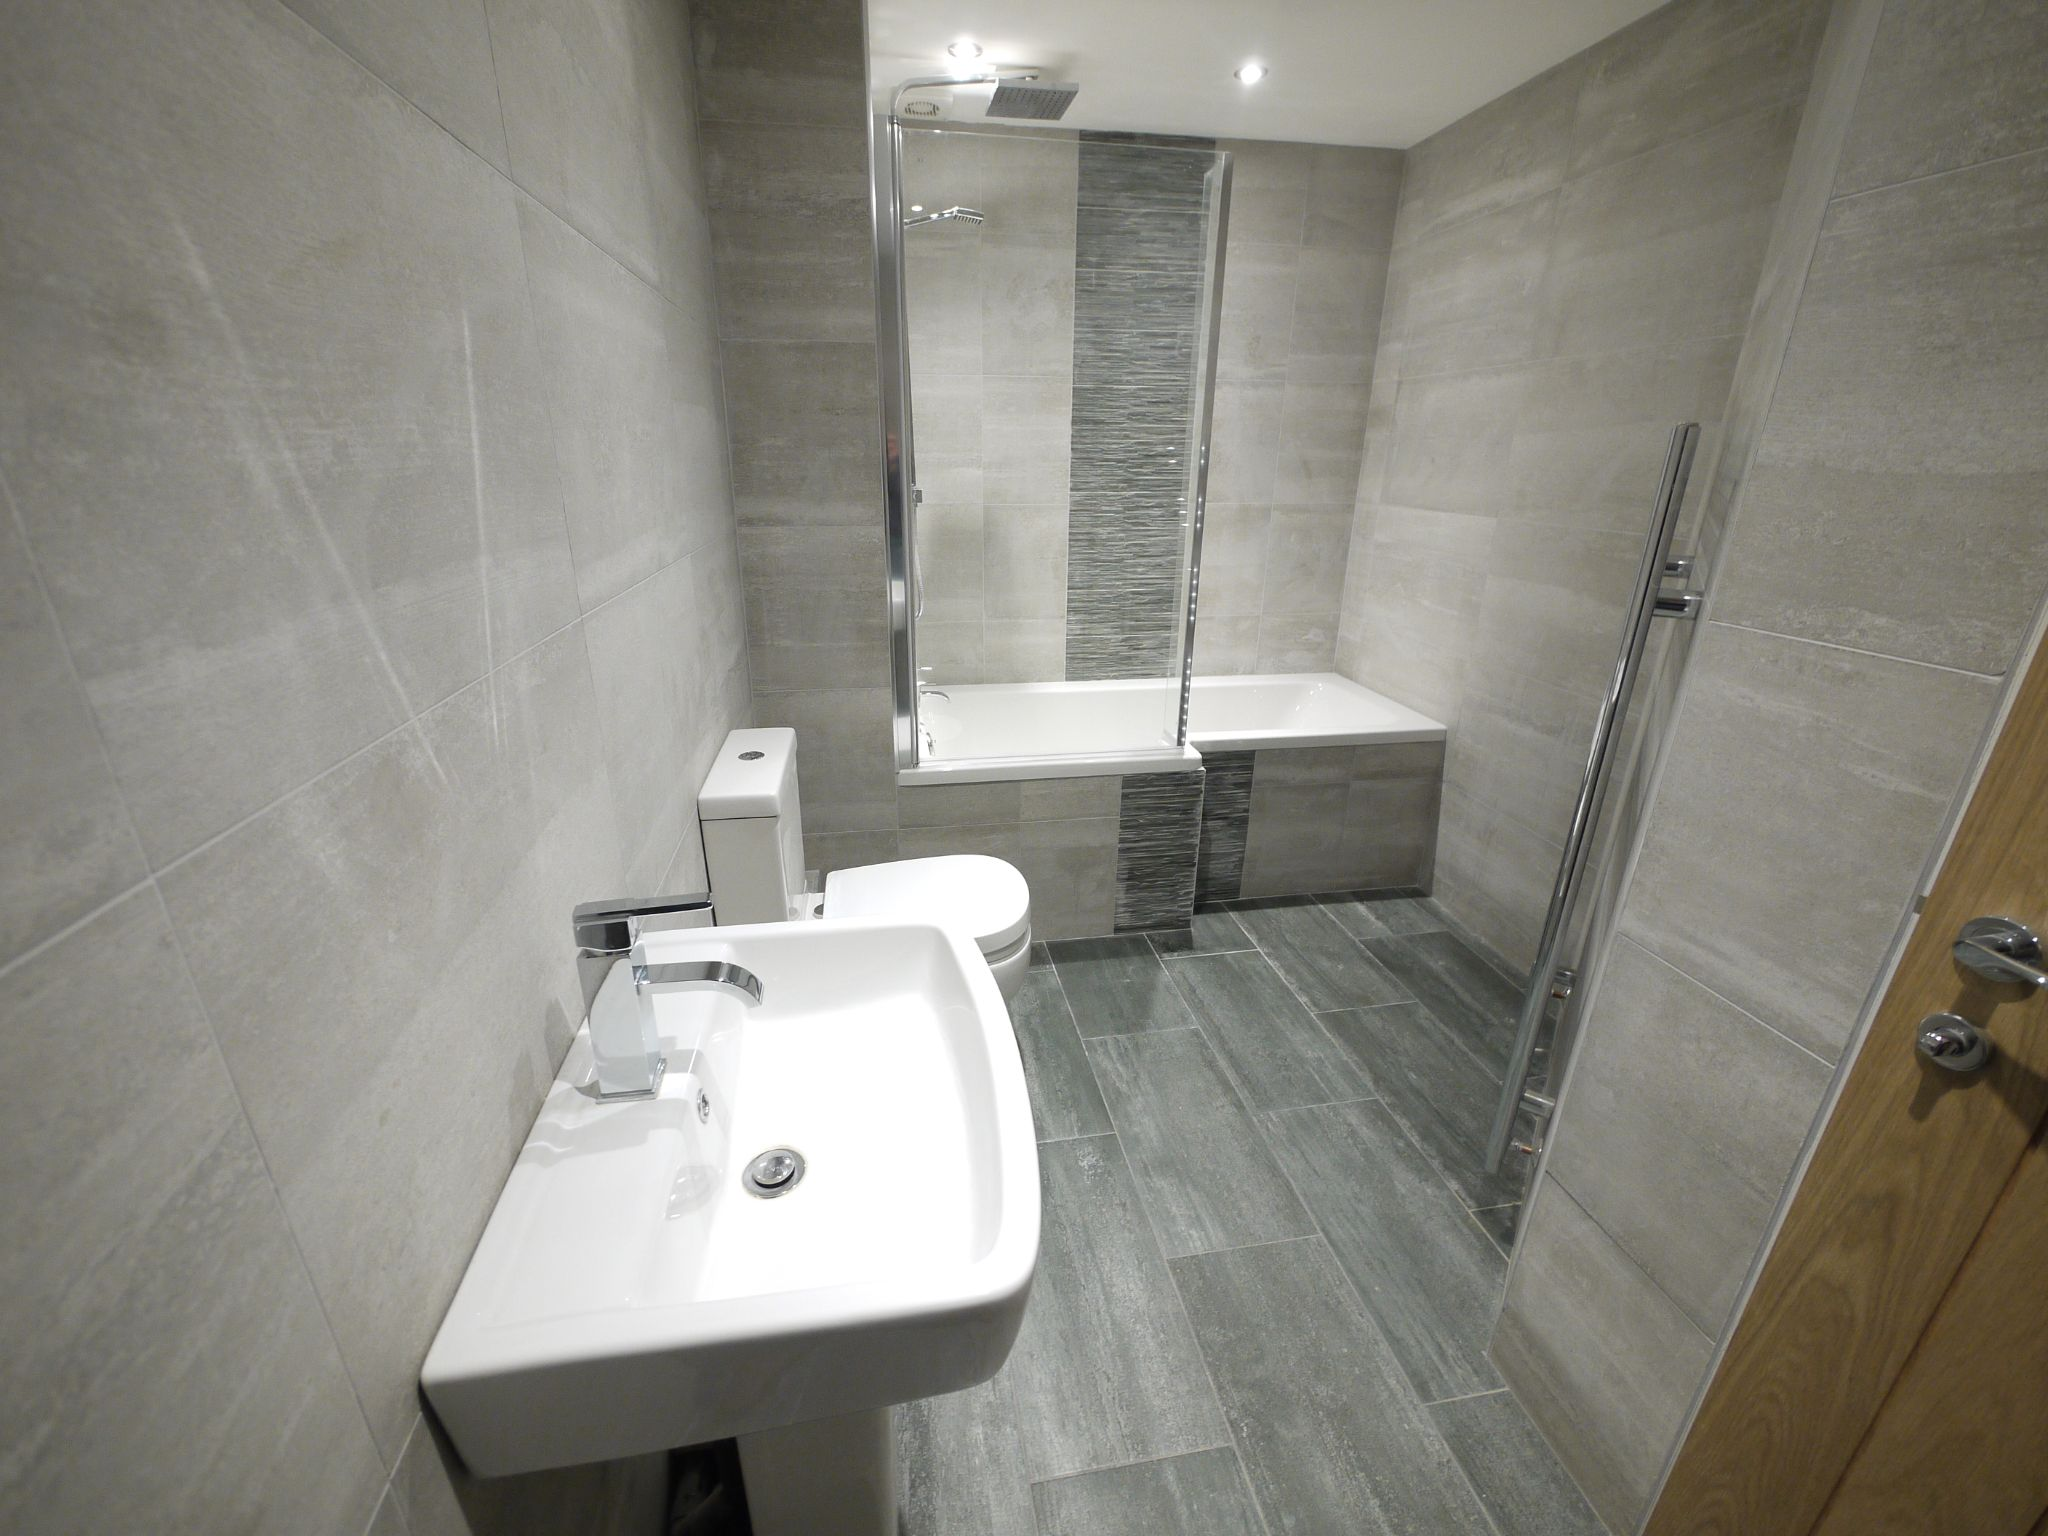 3 bedroom detached house For Sale in Brighouse - Bathroom 1.